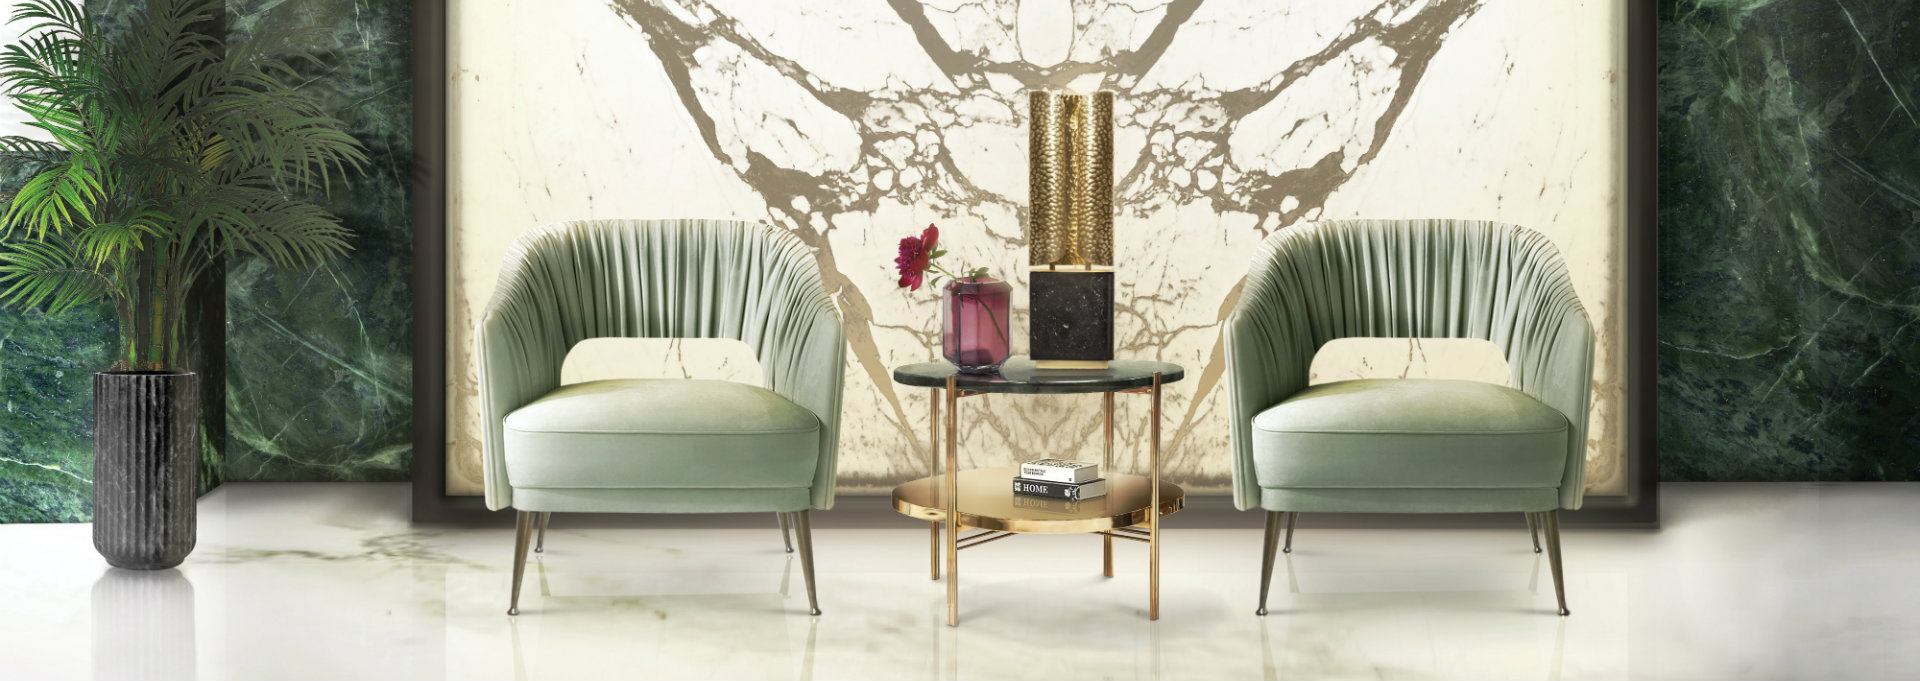 5 unique chairs that you will love in Maison et Objet 2018 maison et objet 5 Unique Chairs That You Will Love in Maison et Objet 2018 imagem 0